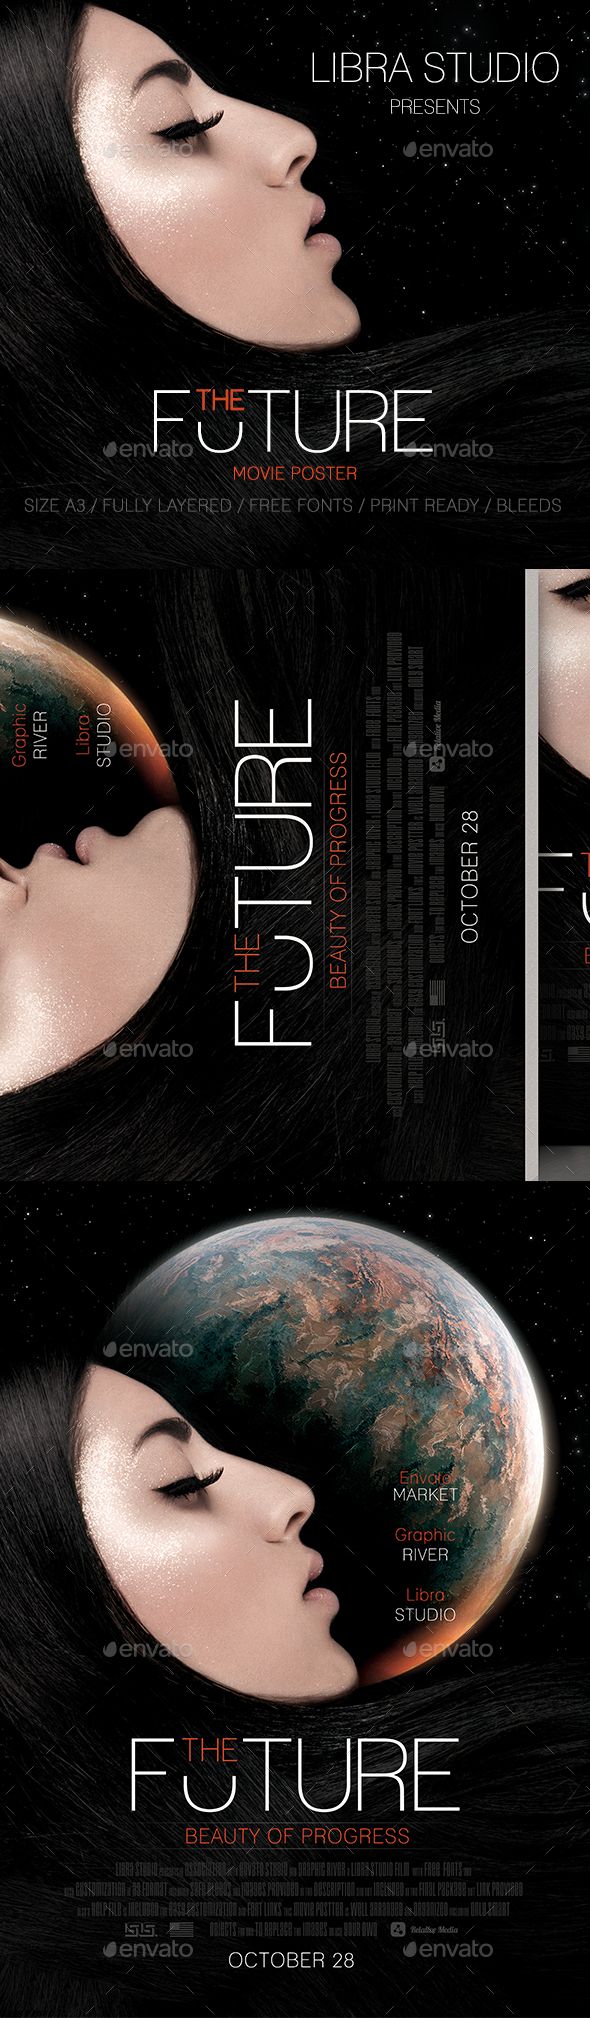 The Future Movie Poster - Miscellaneous Events